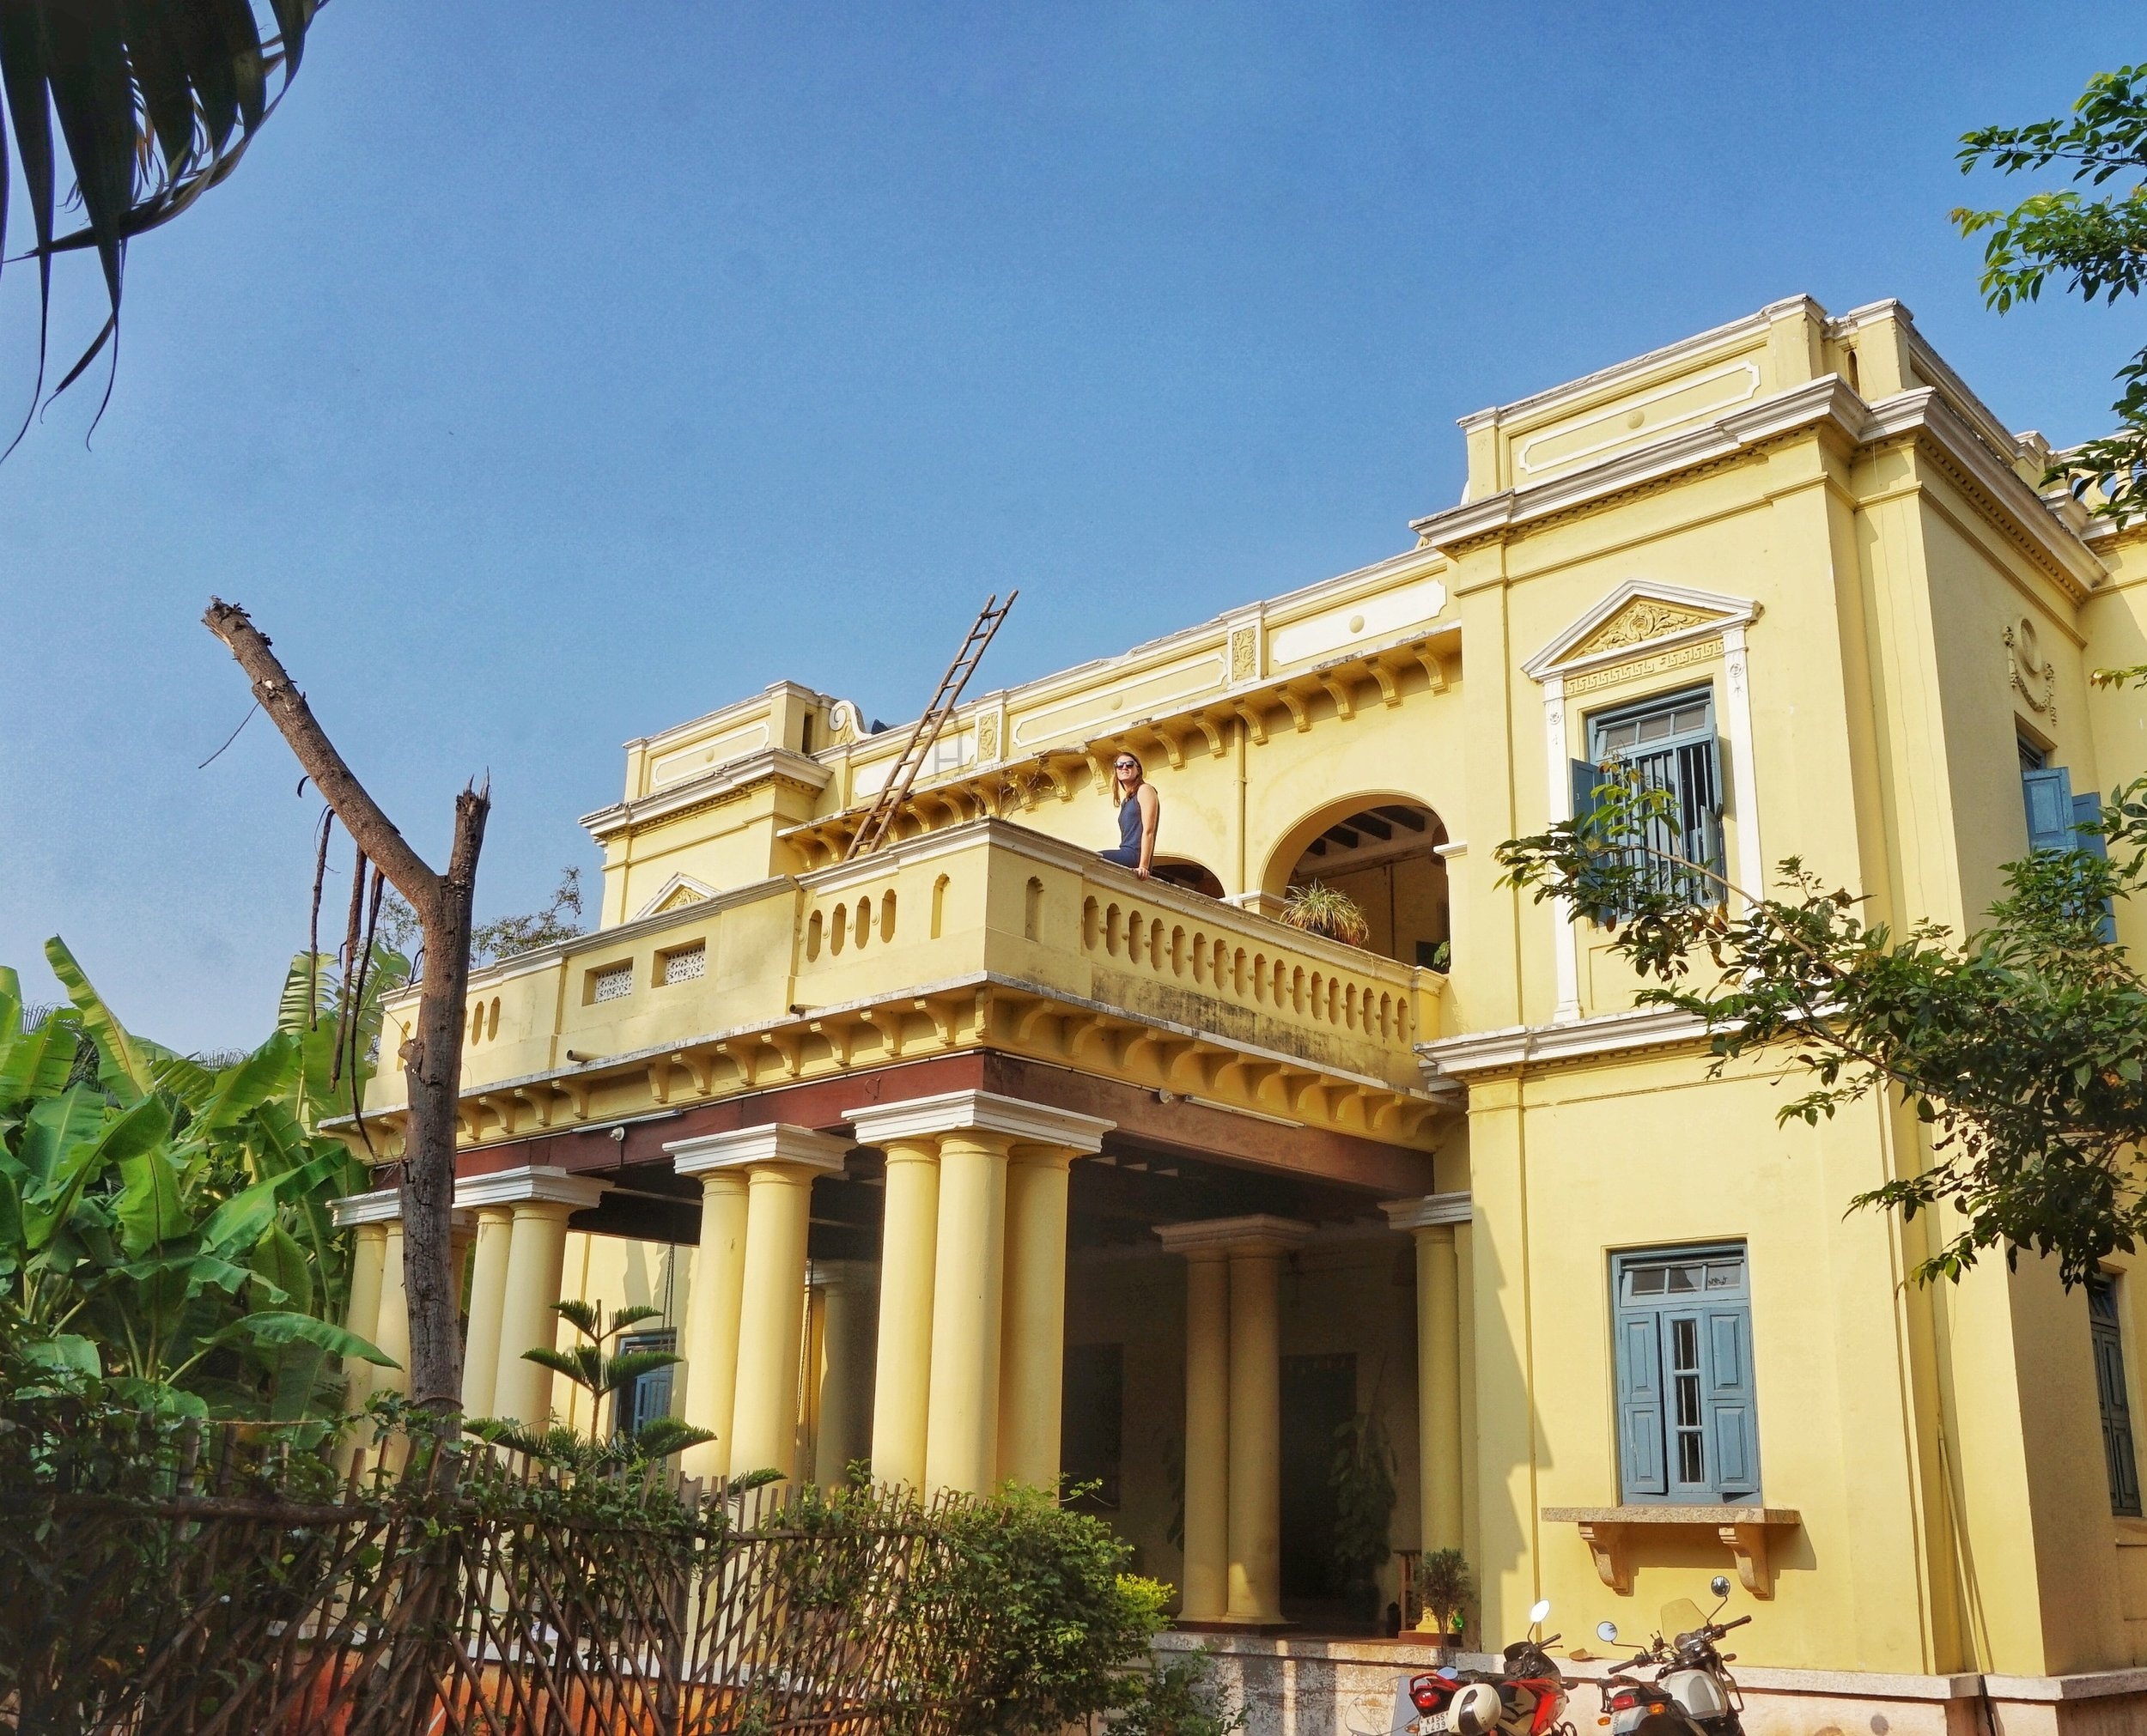 The Mansion 1907 is a great Hostel to stay in during your time in Mysore.